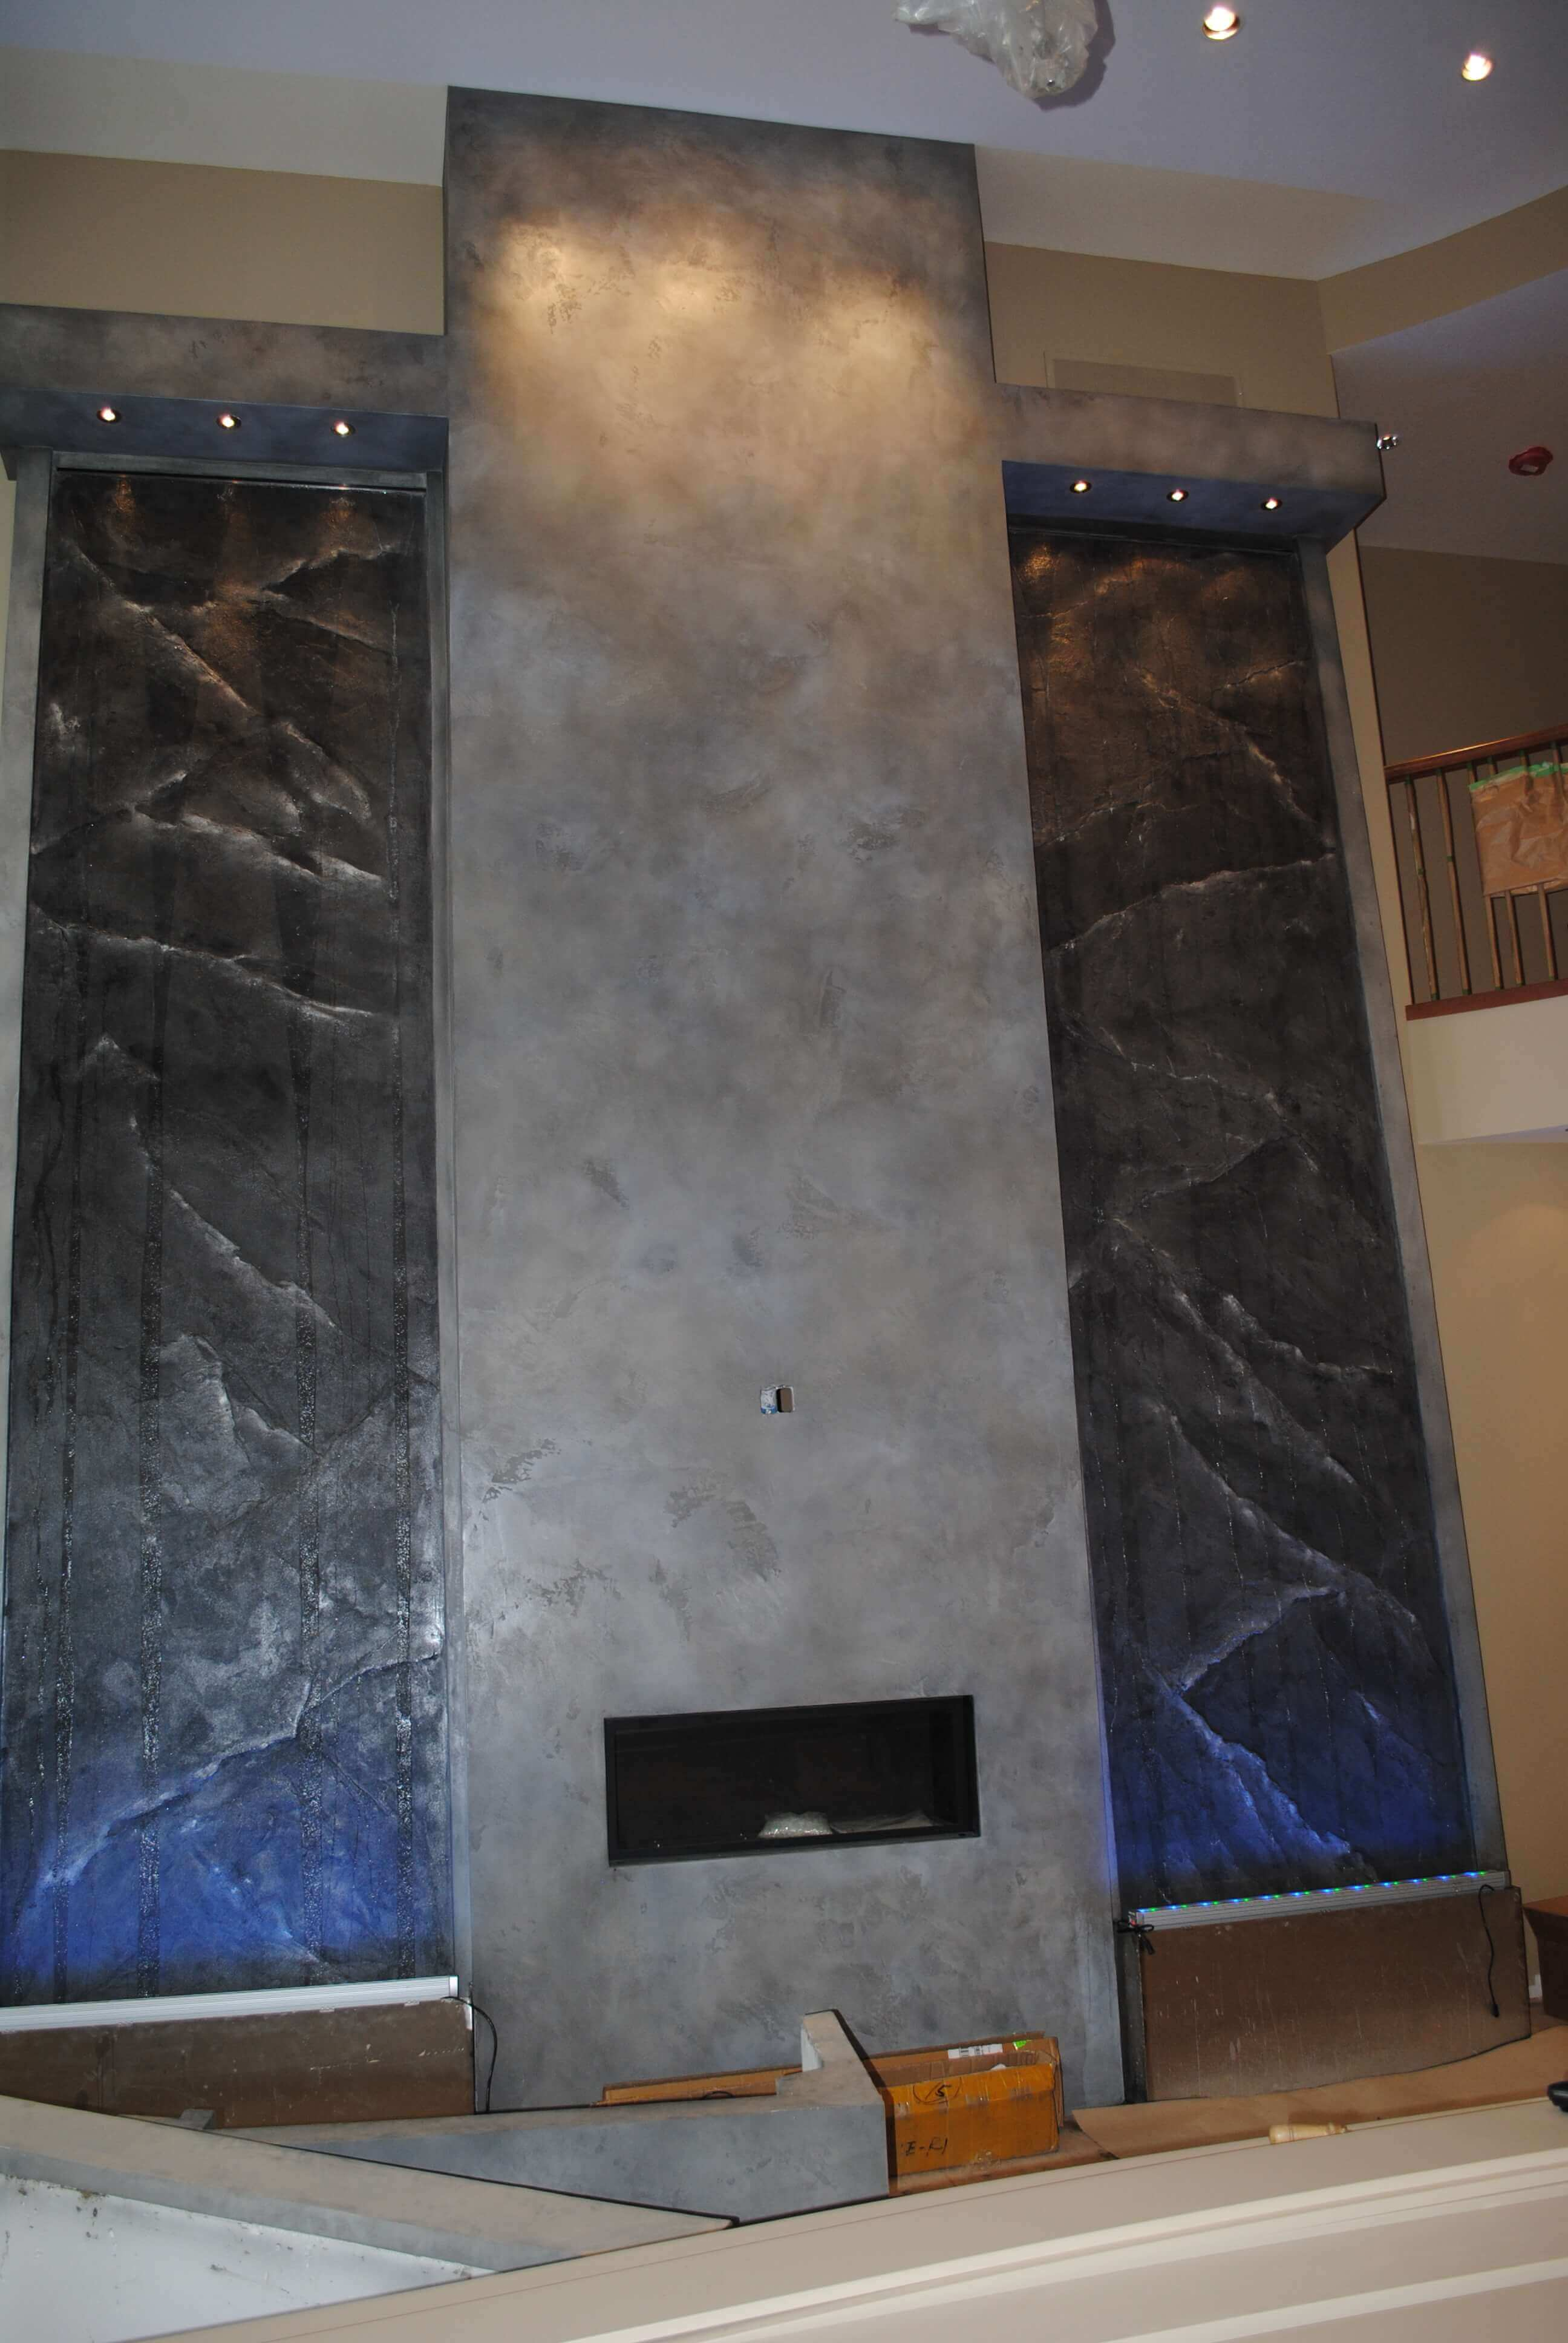 the features resort portfolio las m gallery water wall vegas at structures lobby spa nv interior casino by item